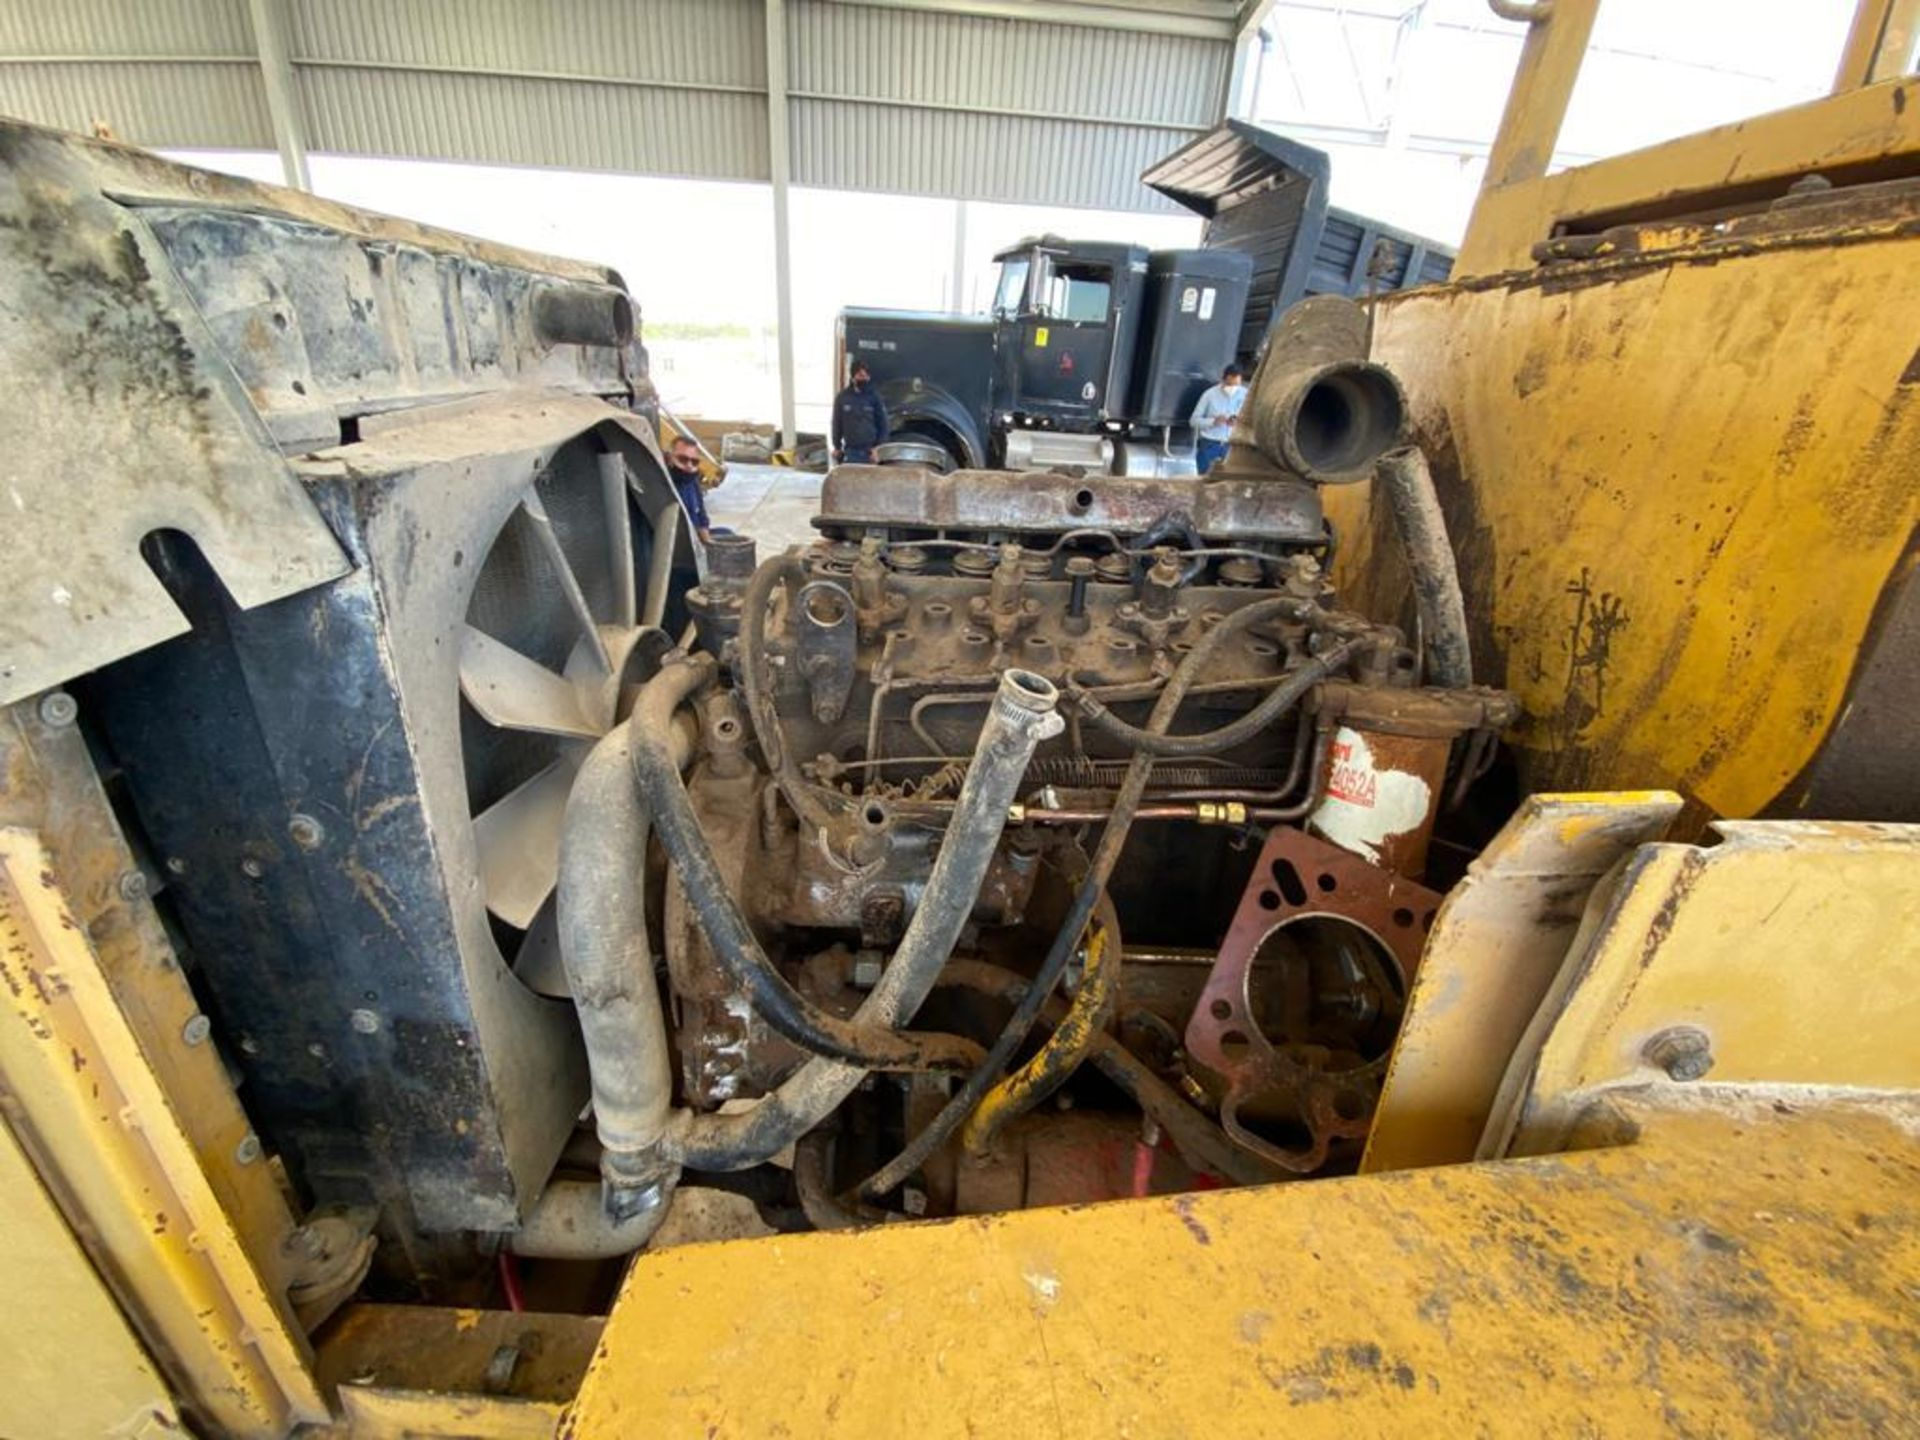 Volvo BM TYPE L 30 Michigan Front Loder, automatic transmission - Image 42 of 53